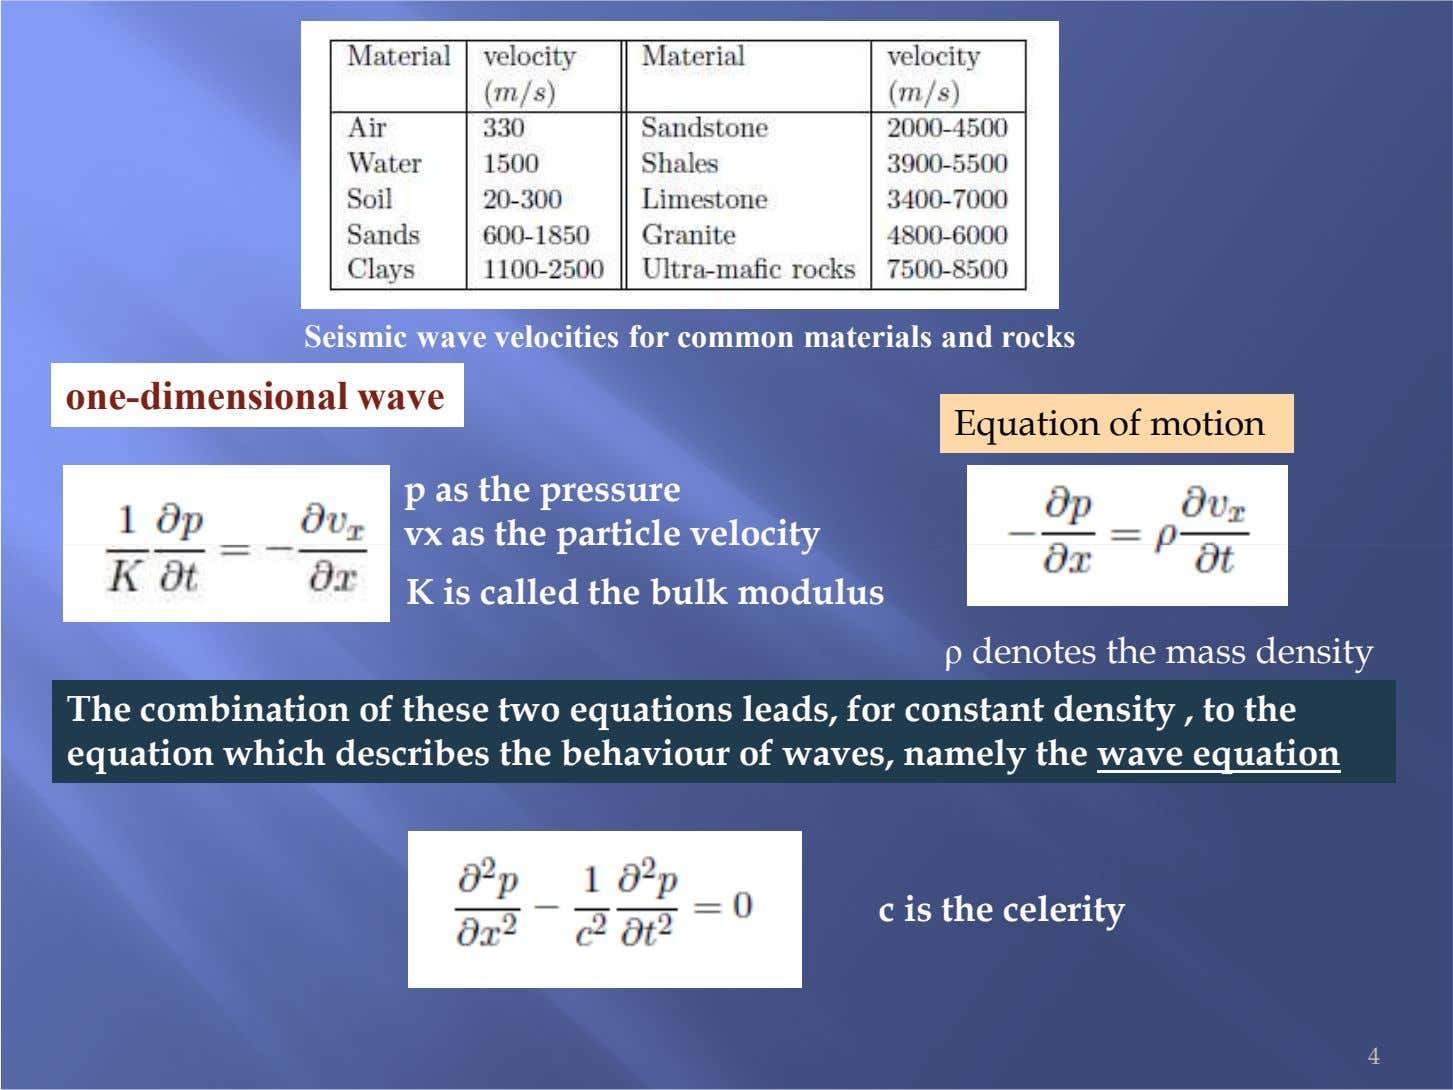 Seismic wave velocities for common materials and rocks one-dimensional wave Equation of motion p as